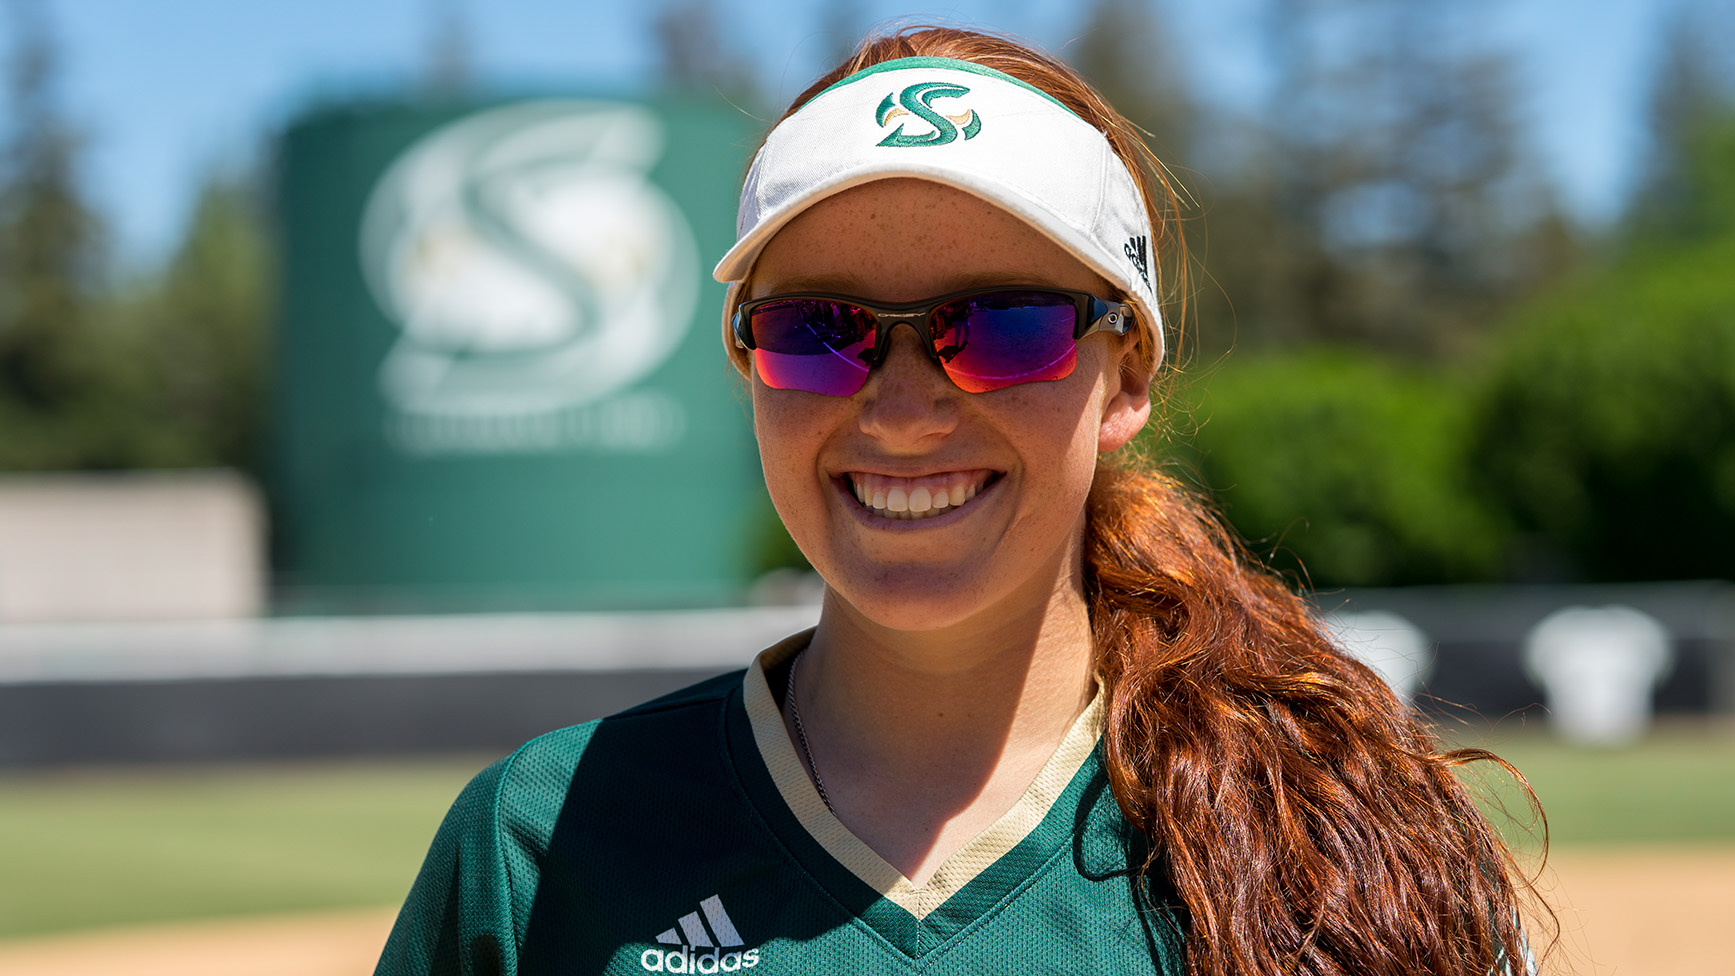 Sacramento State freshman outfielder Suzy Brookshire broke the school record for most home runs in a season with 13 on April 22. Brookshire leads the team with a .363 batting average and a .719 slugging percentage. (Photo by Michael Zhang)